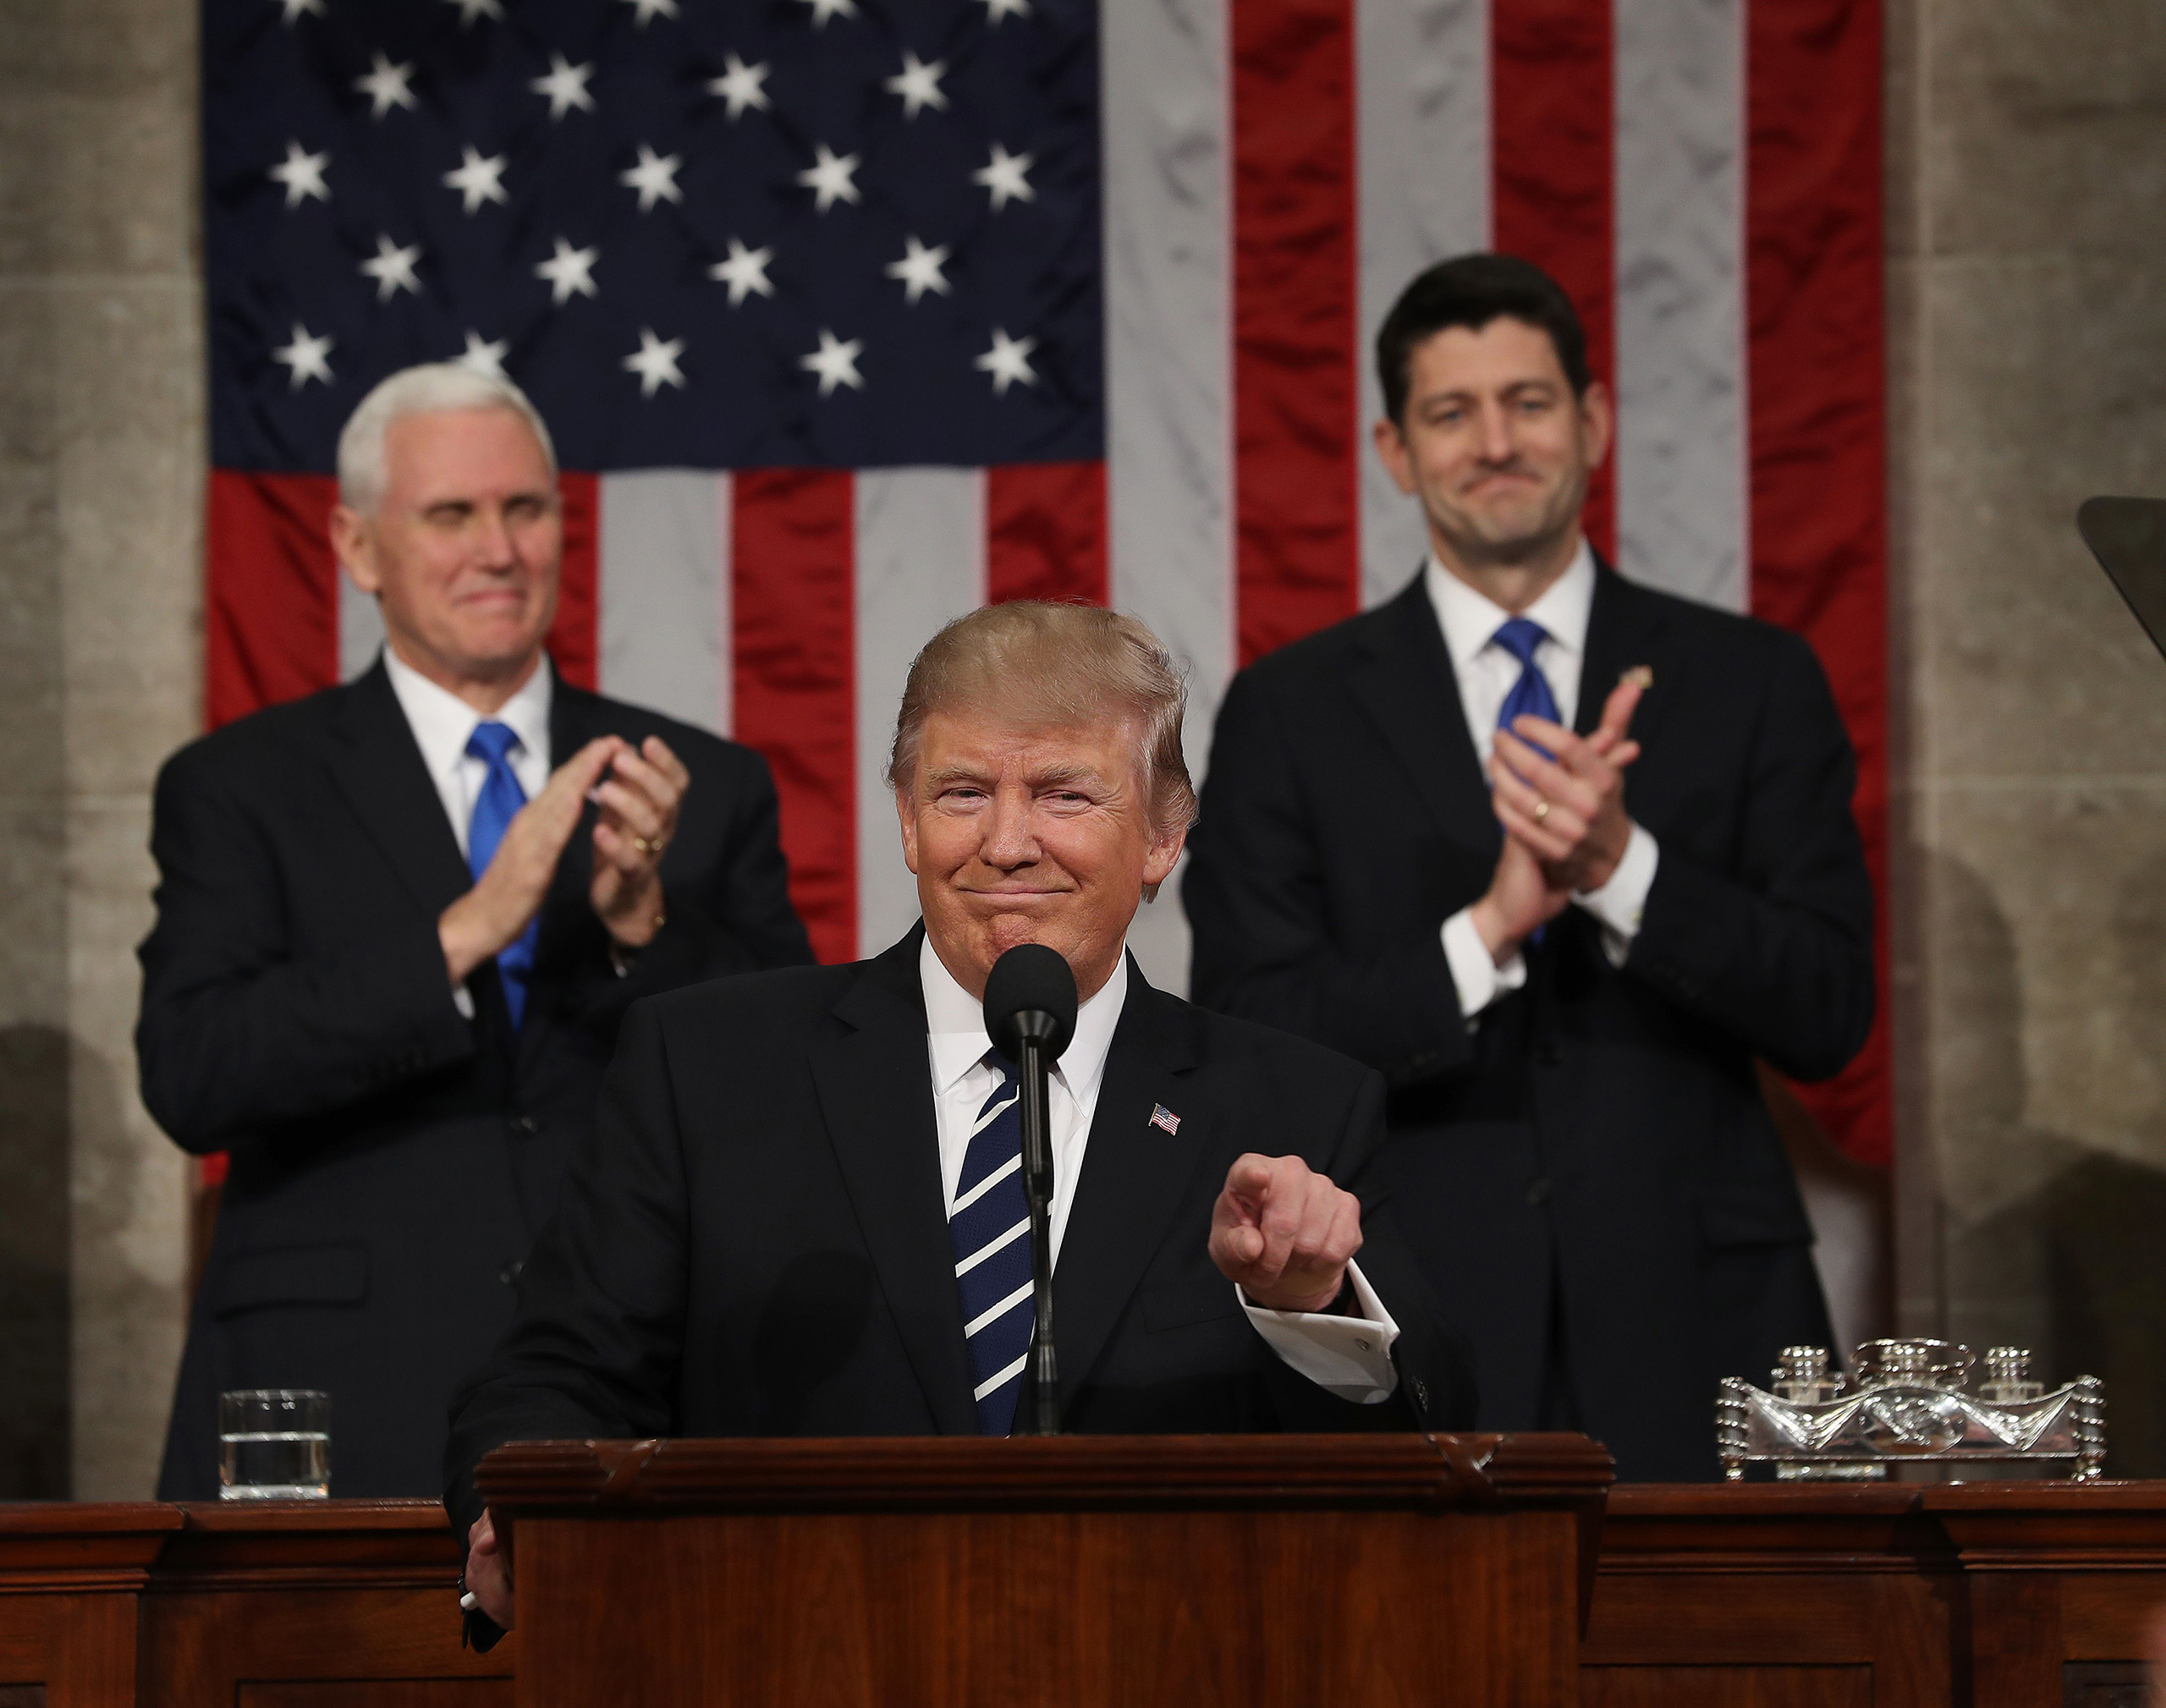 US Vice President Mike Pence (L) and Speaker of the House Paul Ryan (R) applaud as US President Donald J. Trump (C) arrives to deliver his first address to a joint session of Congress from the floor of the House of Representatives in Washington, DC, USA, on February 28, 2017.